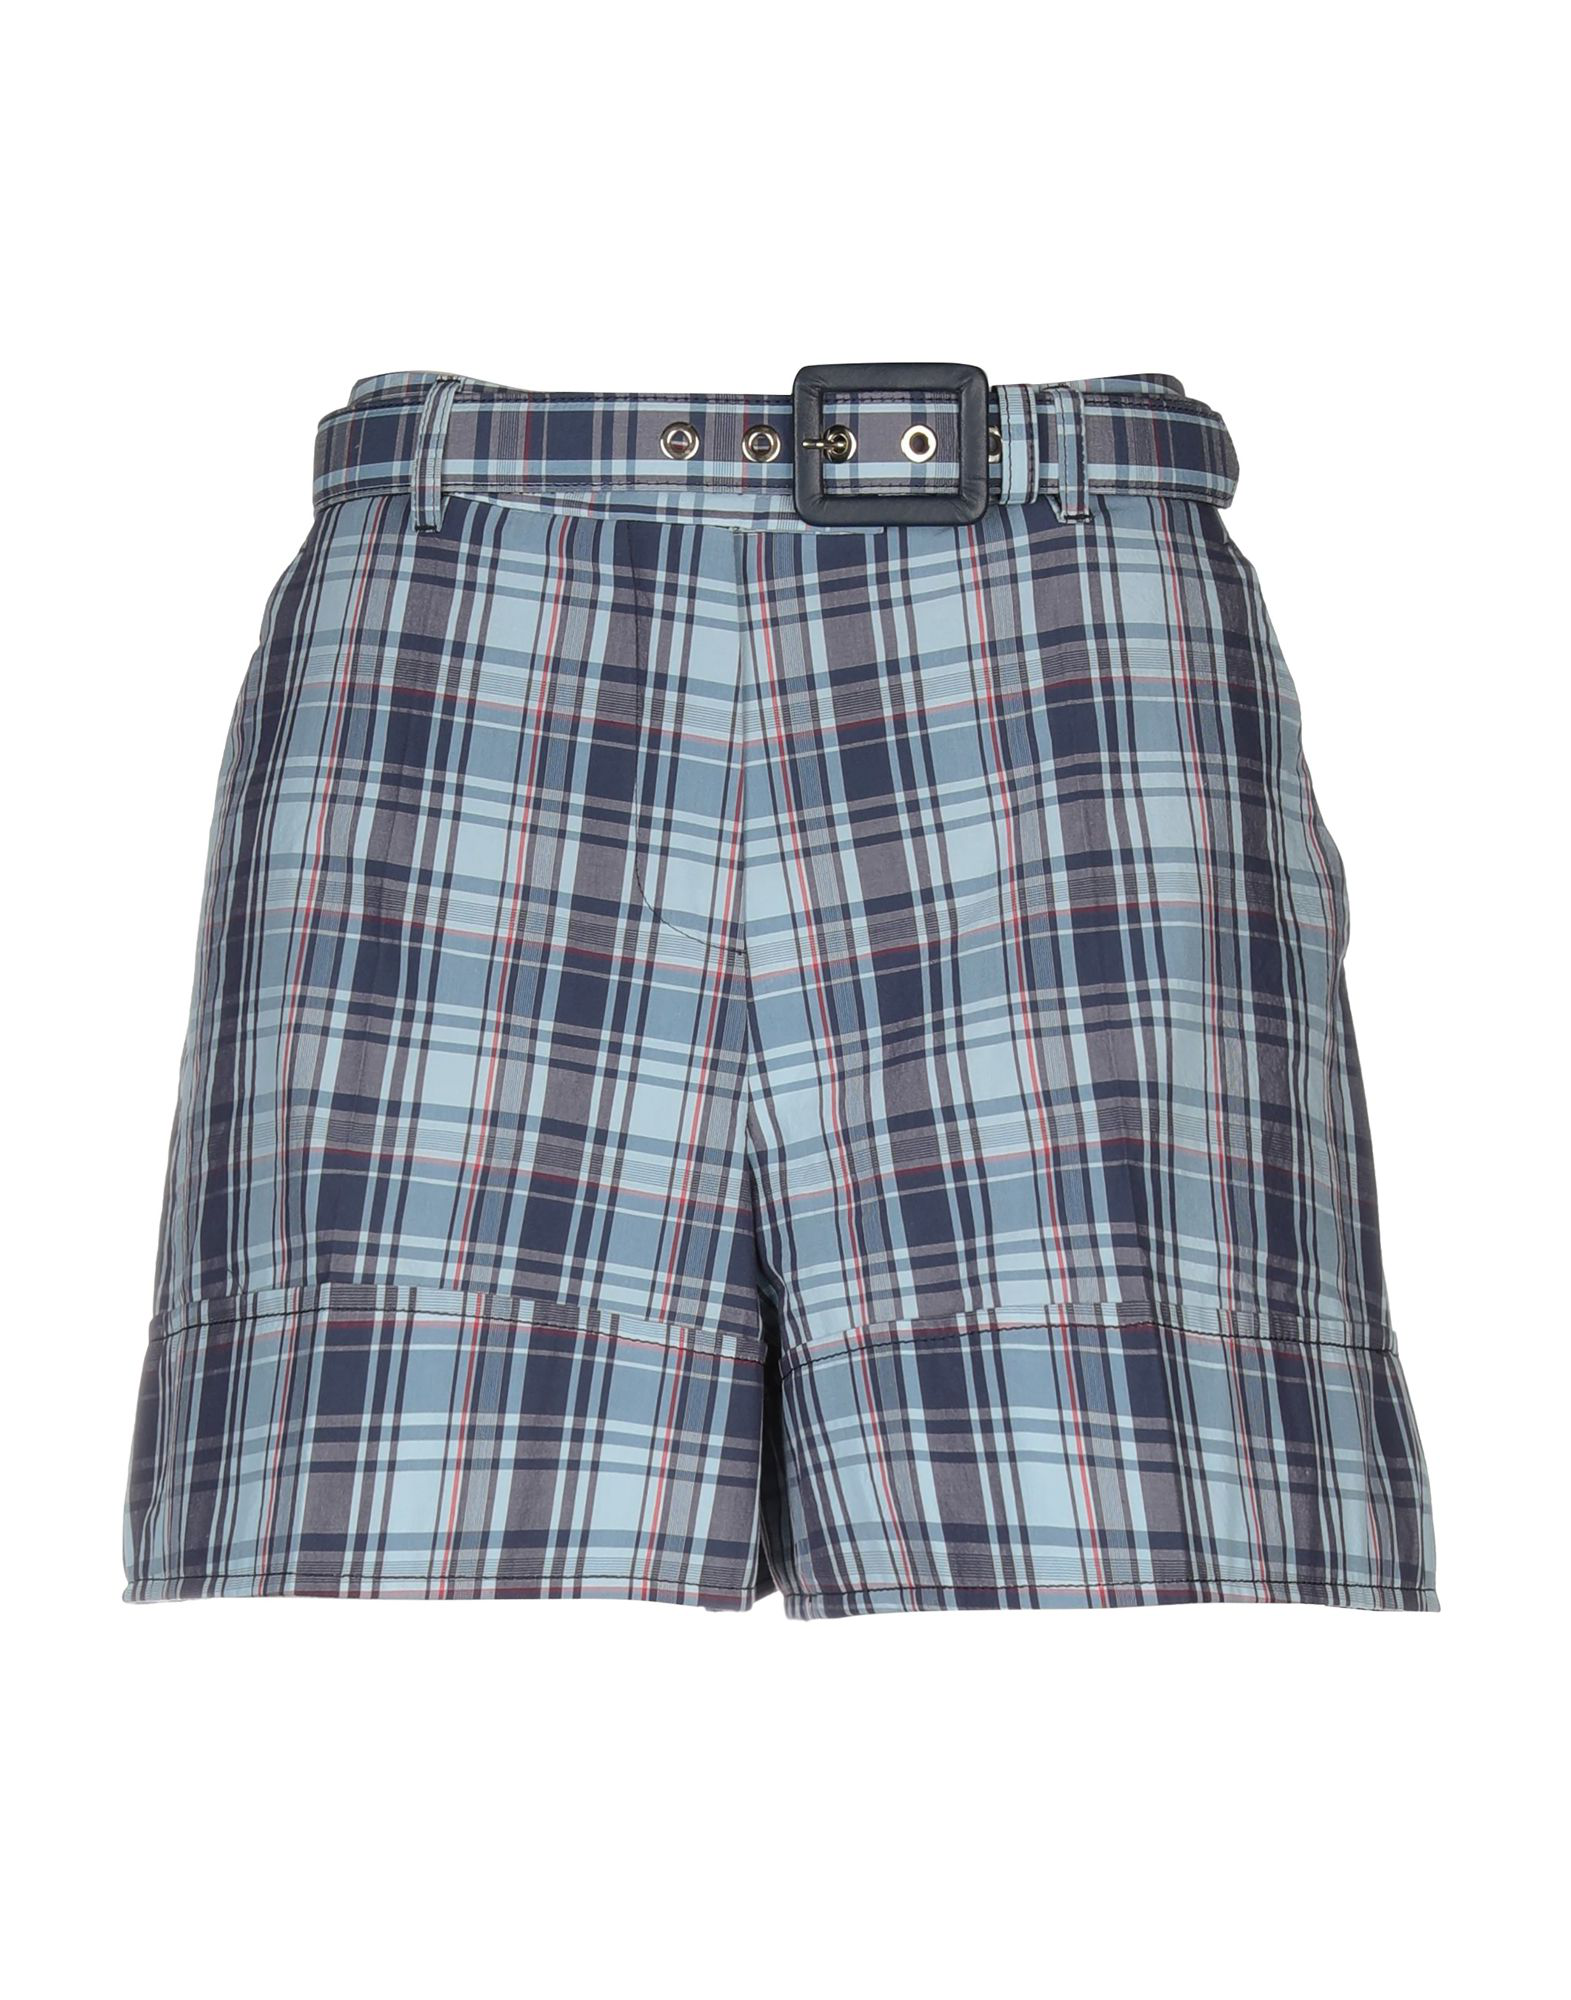 Moschino Cheap And Chic Shorts & Bermuda In Sky Blue